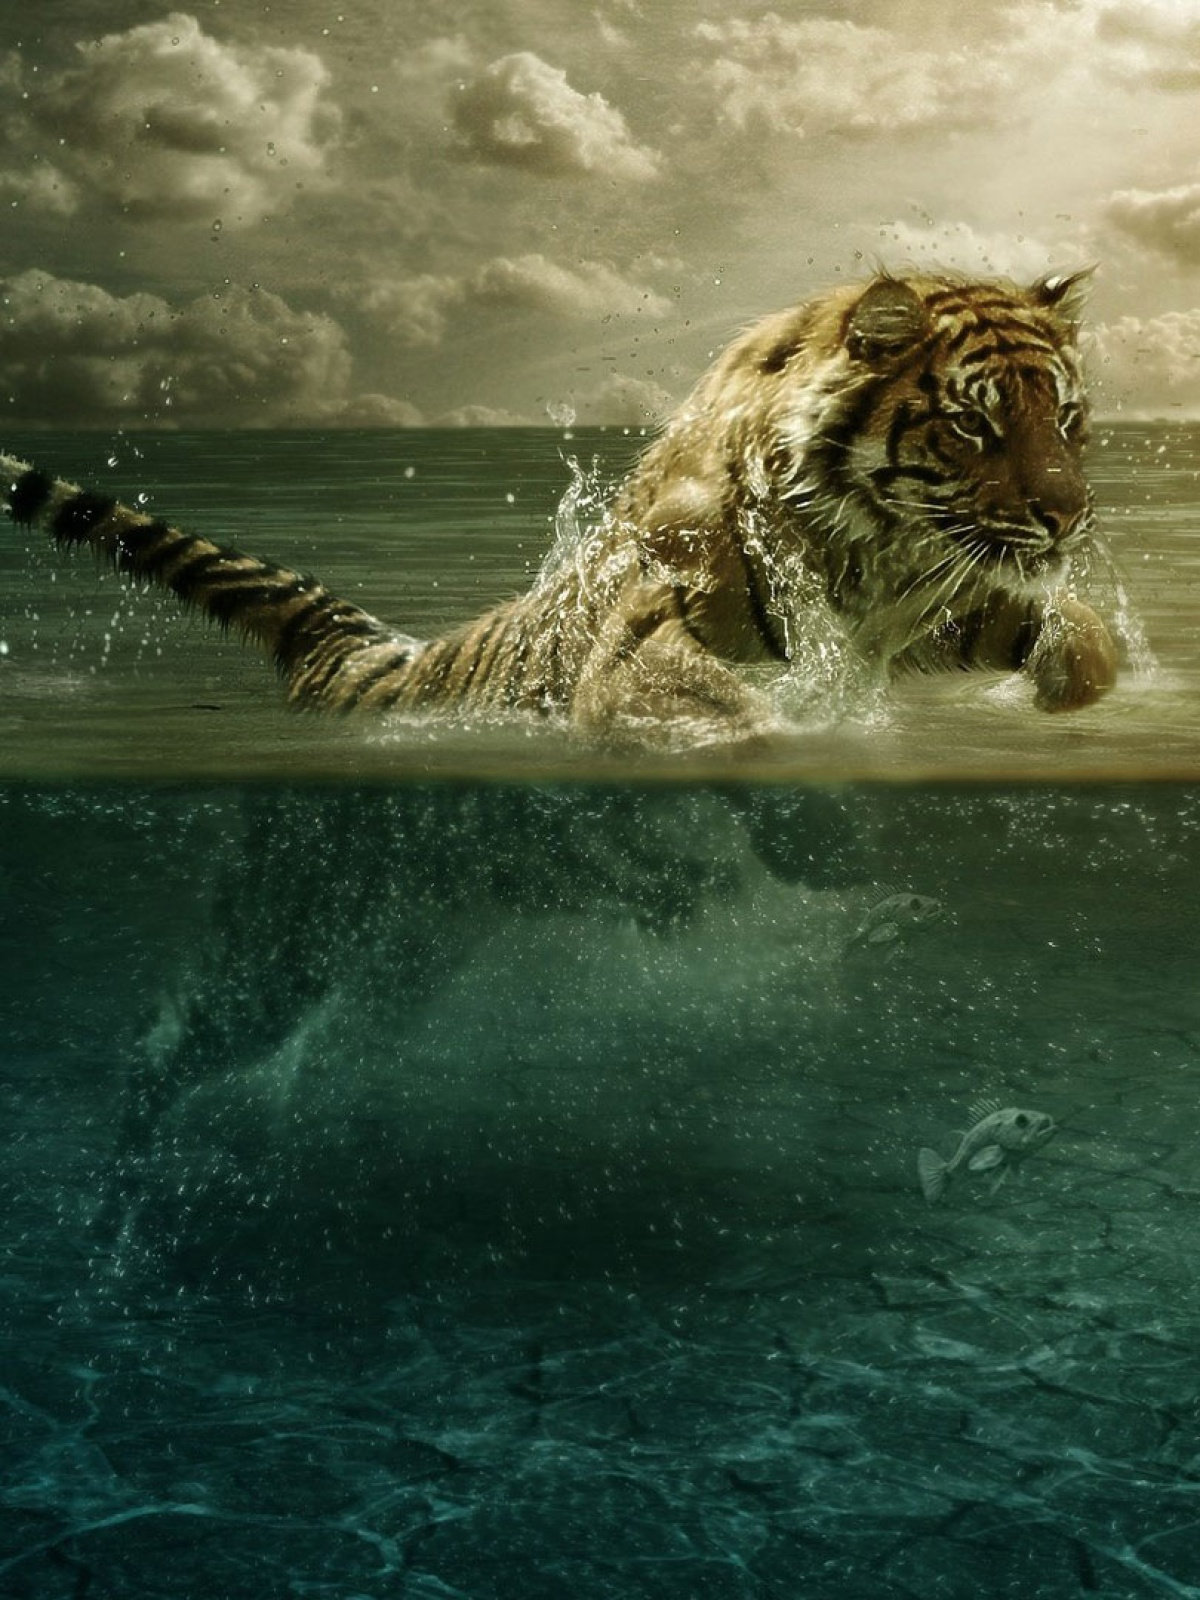 Best Wallpaper Mobile Animal - 1200-Tiger-Playing-in-Water-l  Photograph_297235.jpg